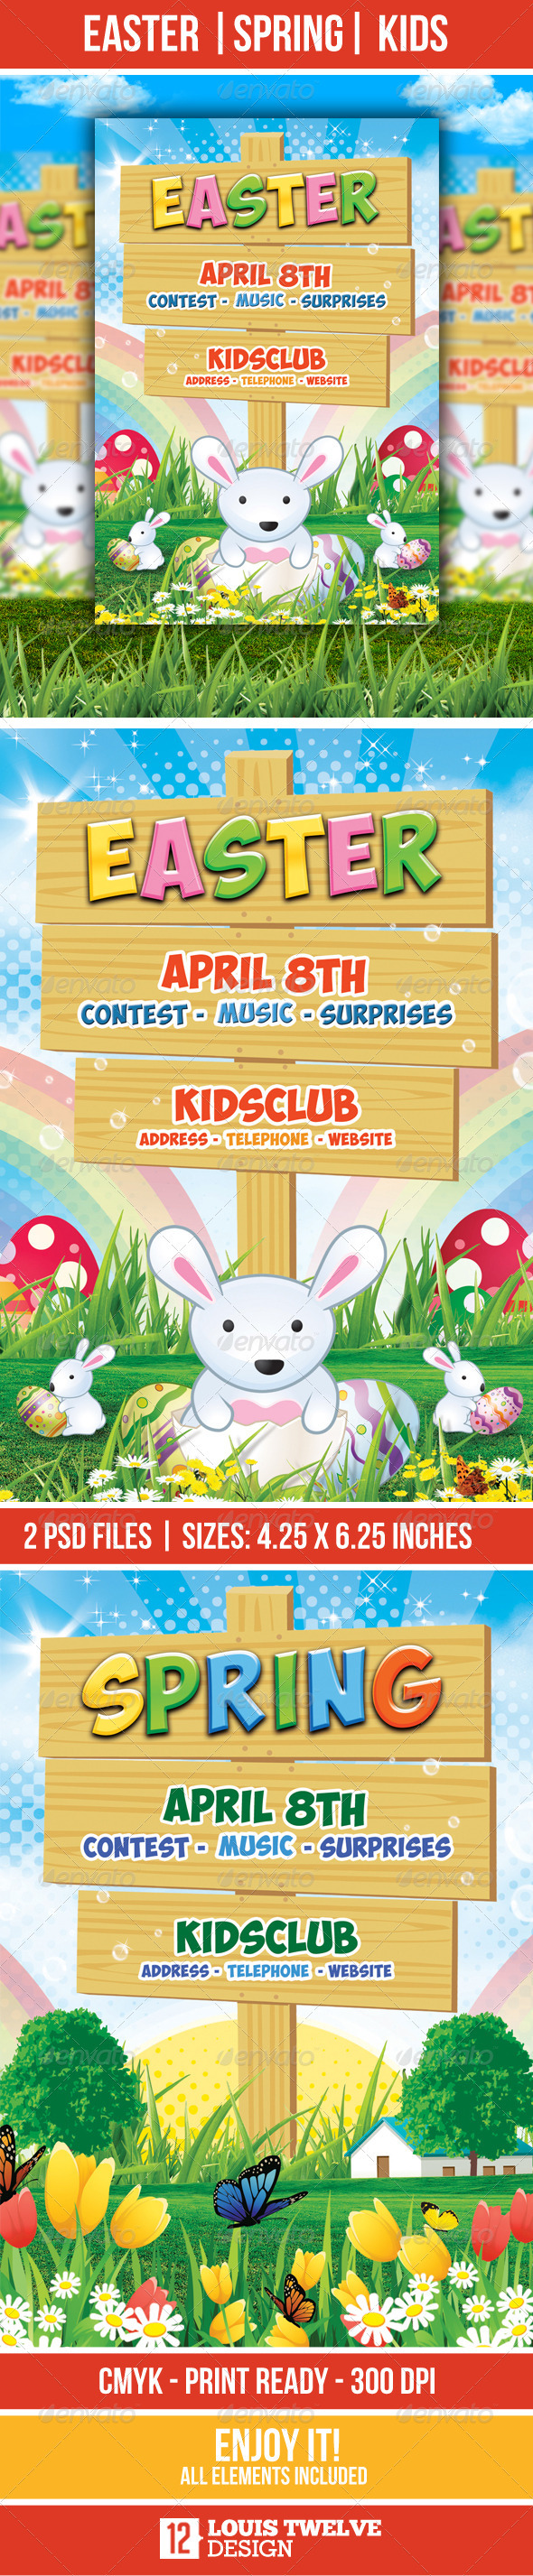 GraphicRiver Easter Kids Spring Flyer Template 1929355